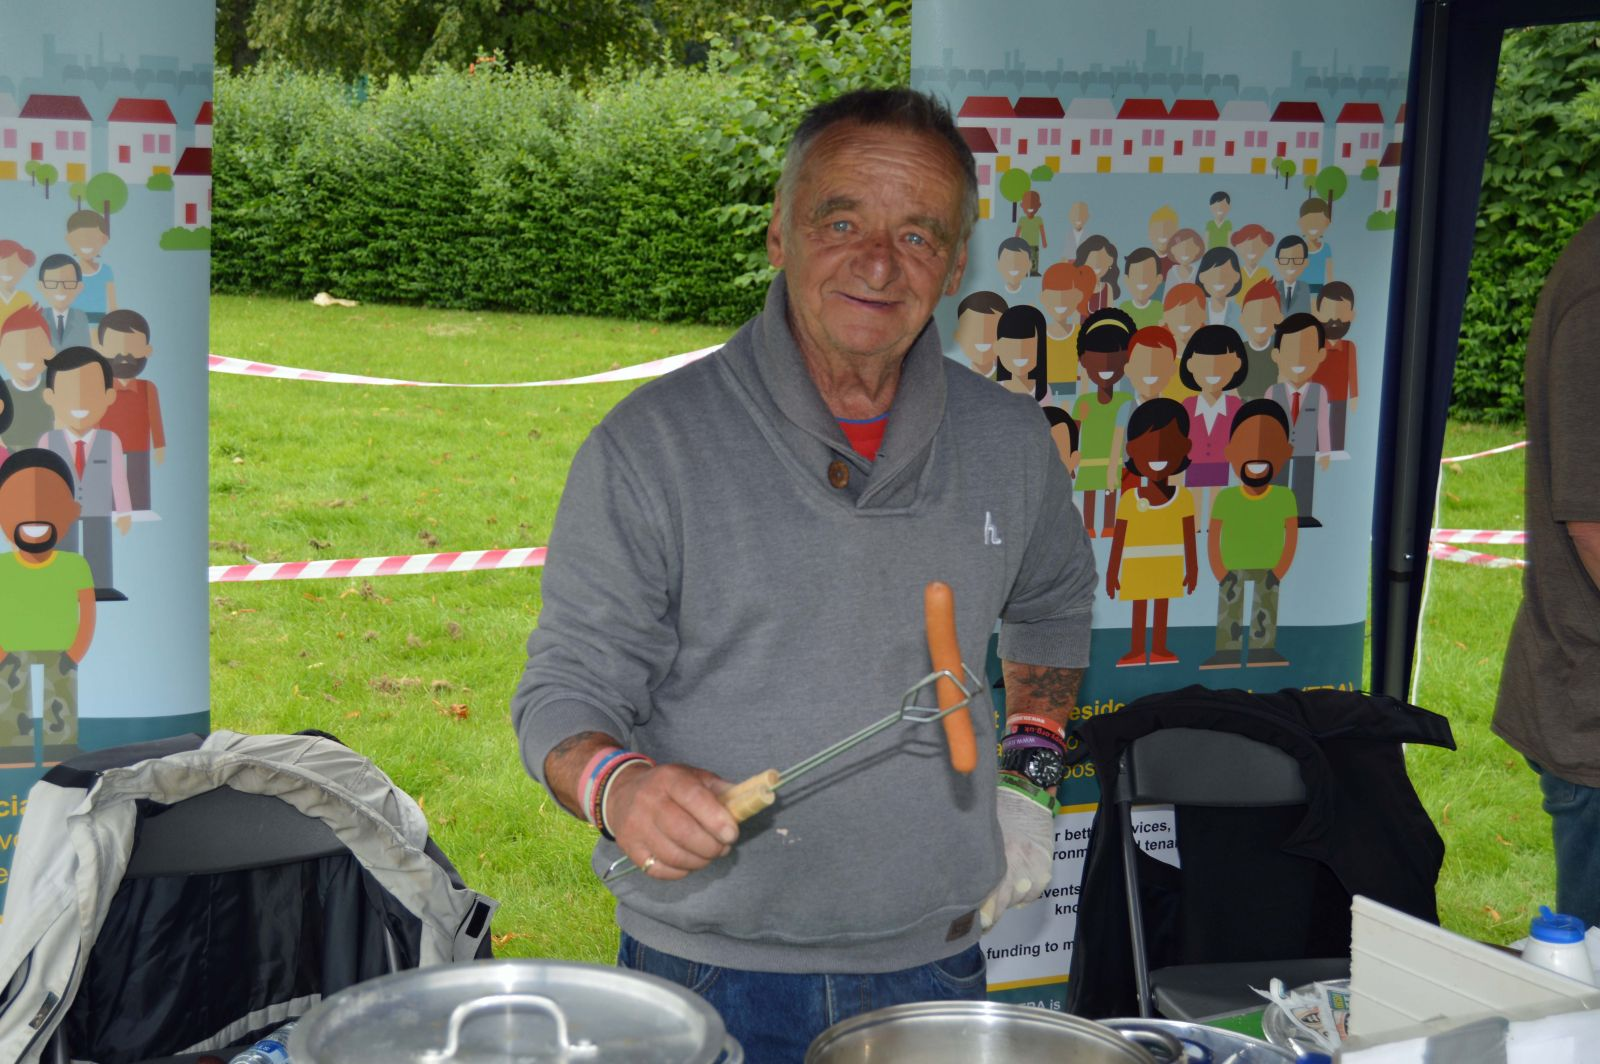 Chesham Fold TRA volunteer serves up hotdogs at Six Town Housing Summer Roadshow in Bury